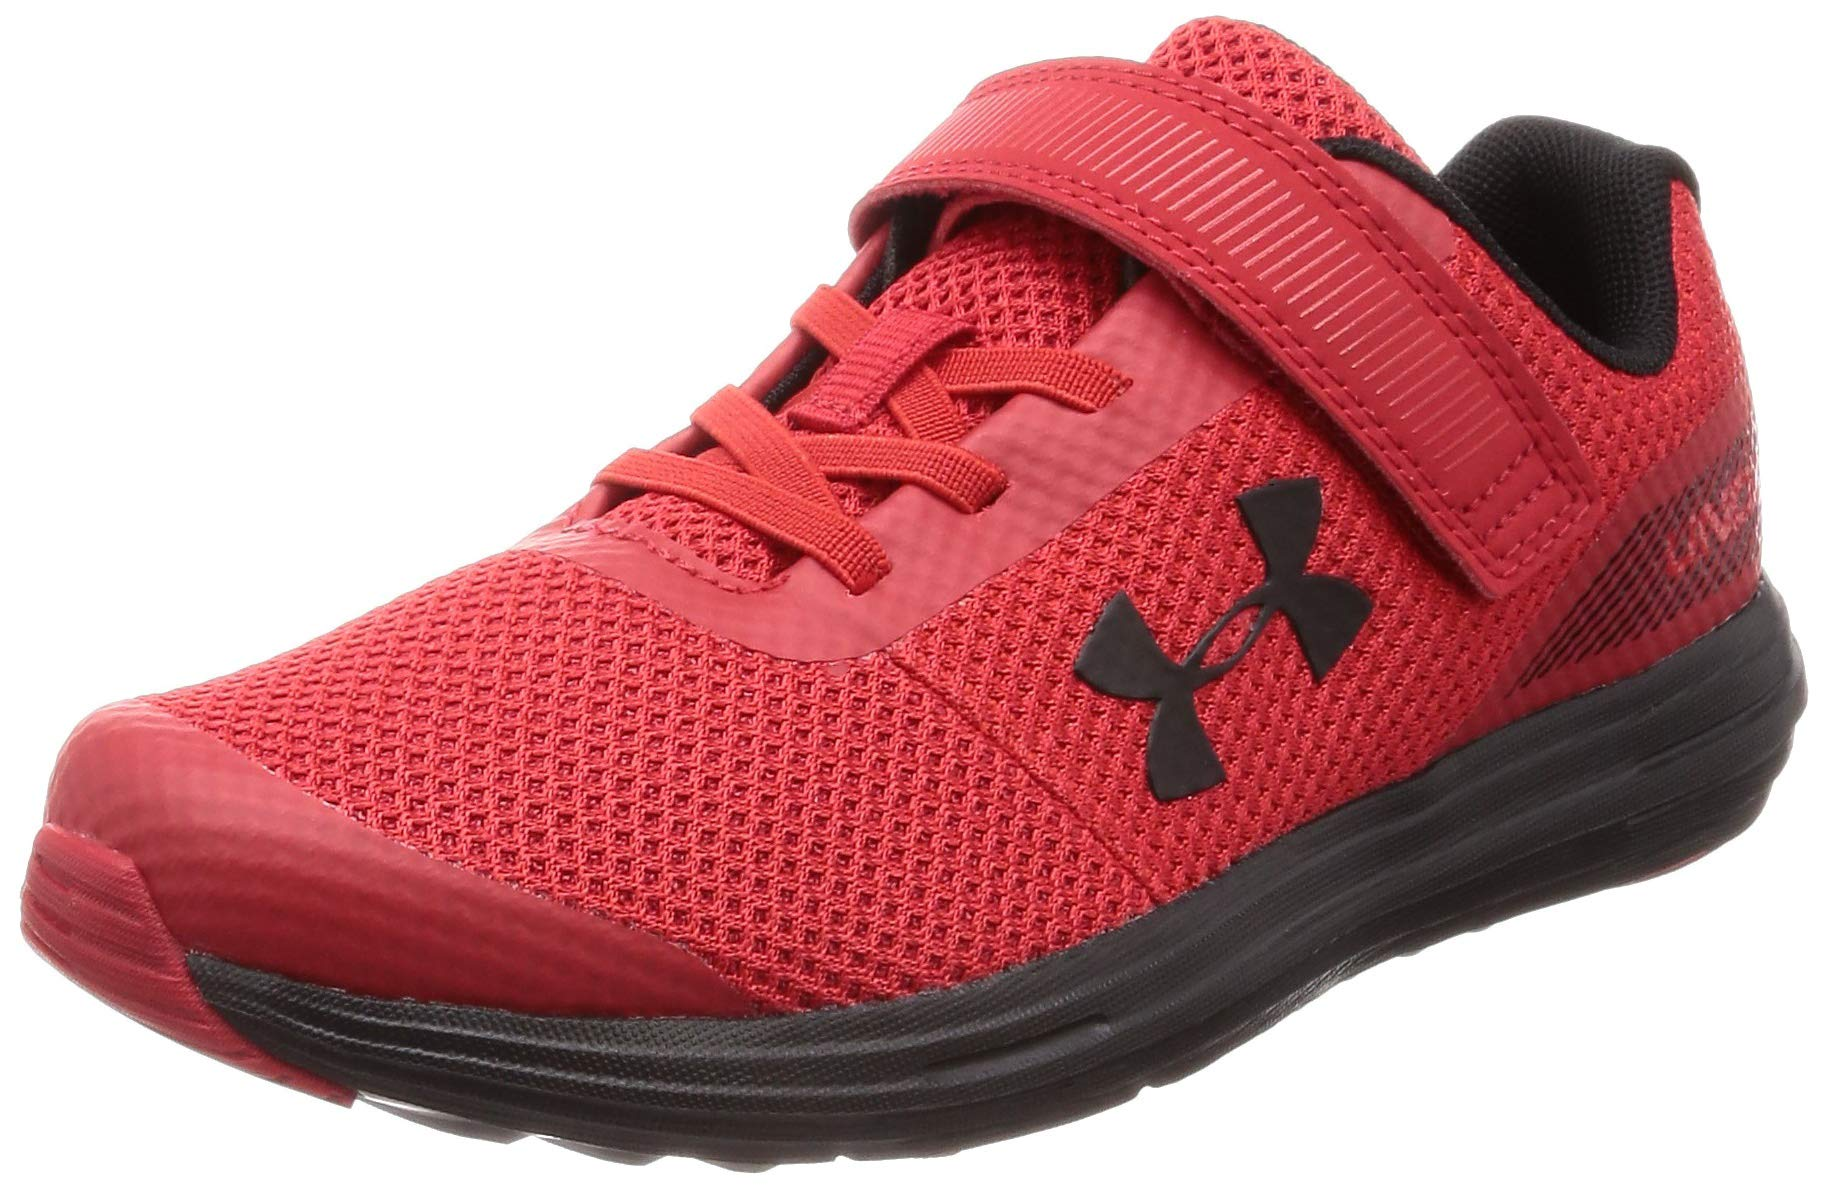 Under Armour Boys' Pre School Surge RN Alternate Closure Sneaker, Red (600)/Black, 3 by Under Armour (Image #1)